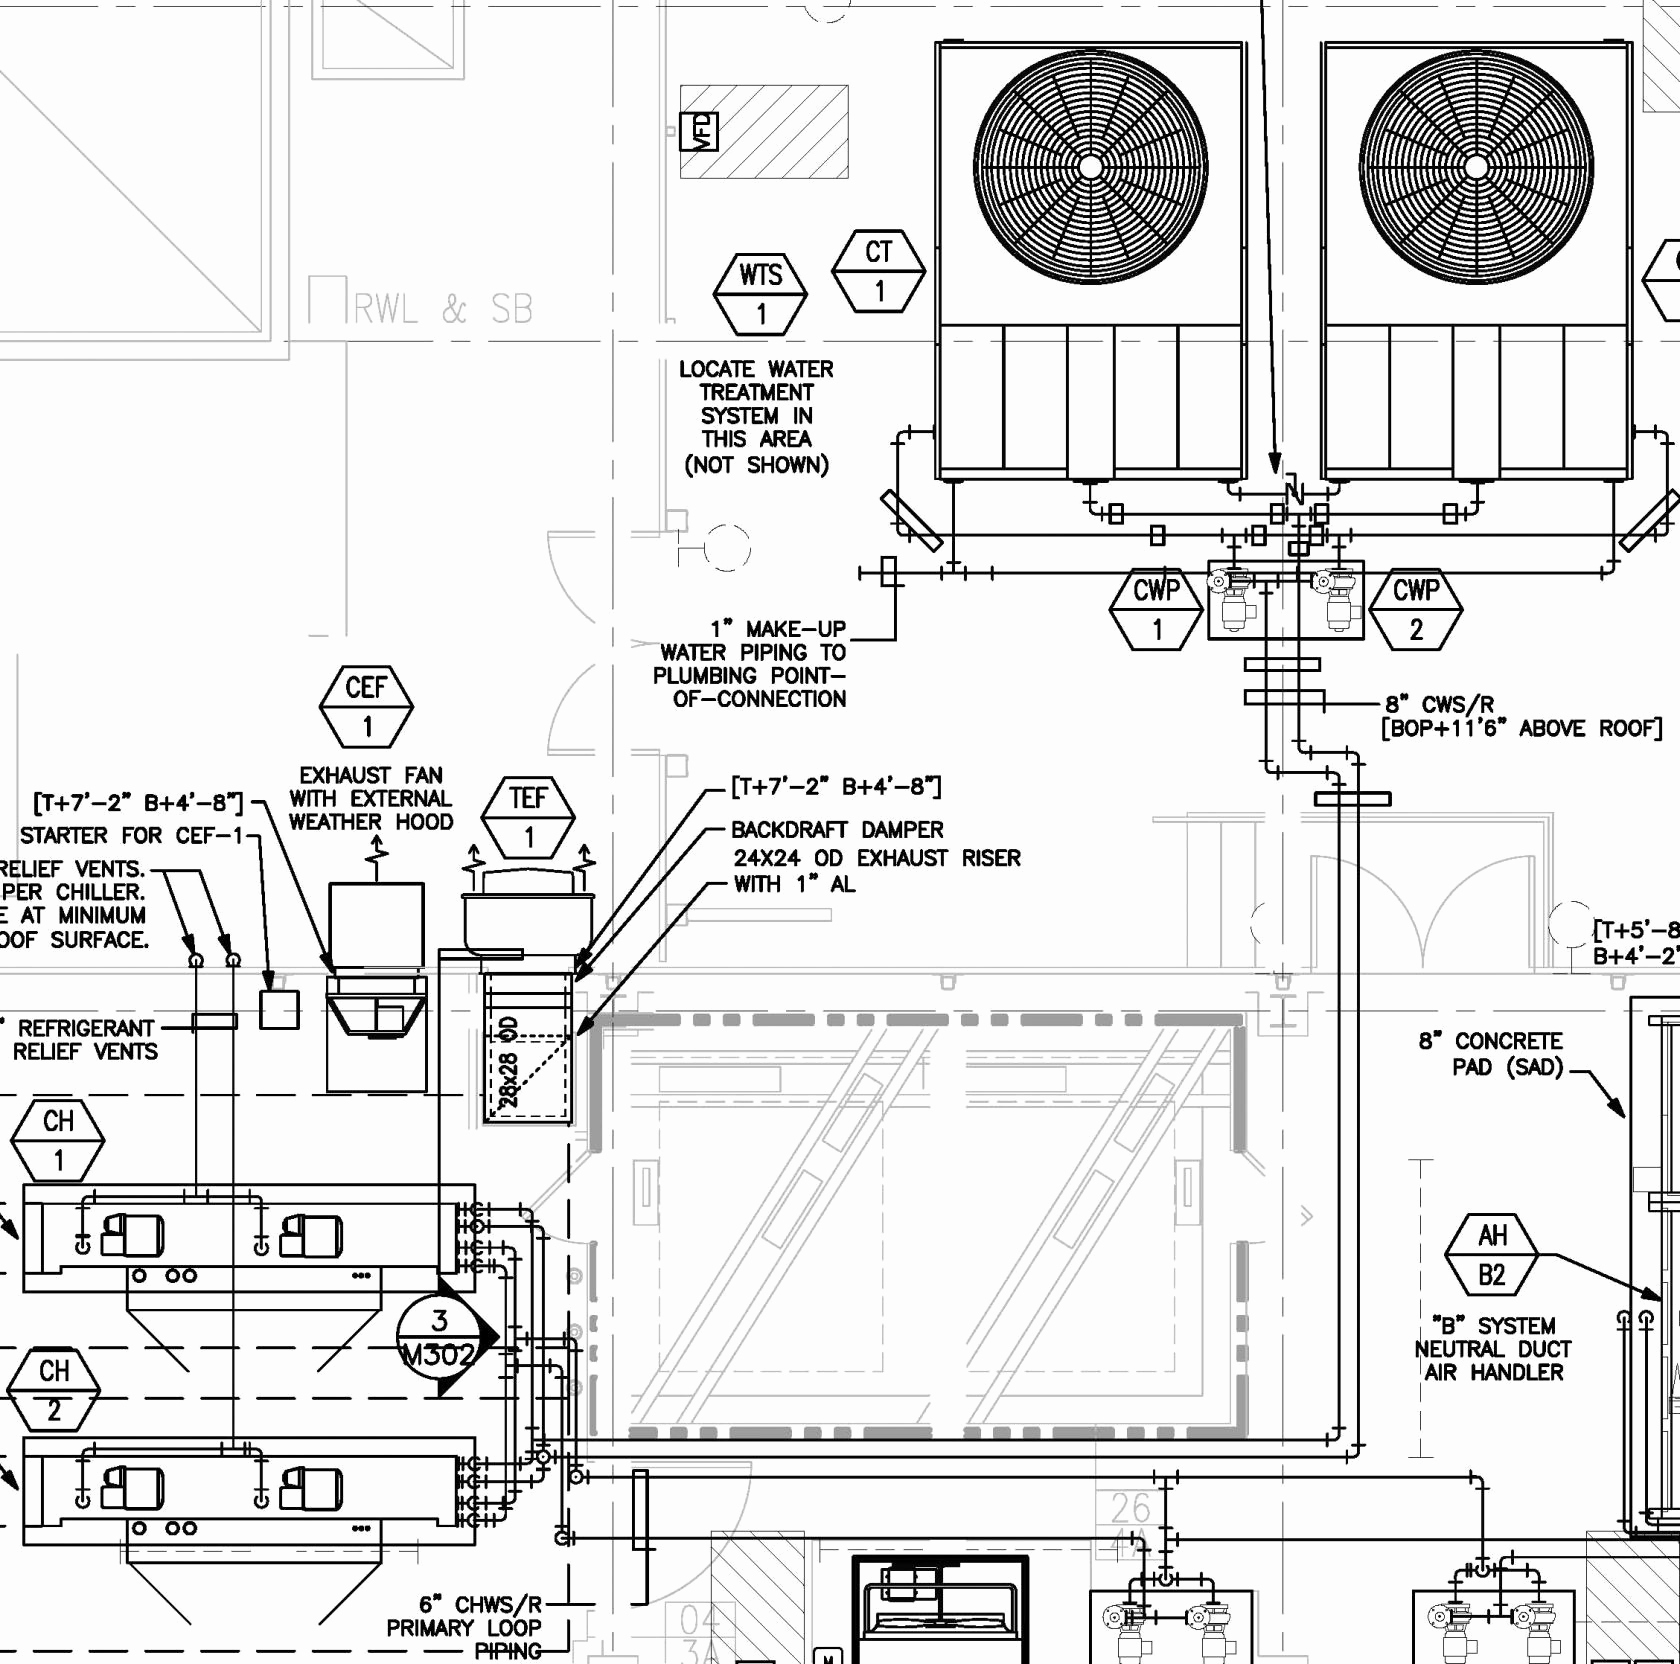 In Ground Pool Electrical Wiring Diagram Sample